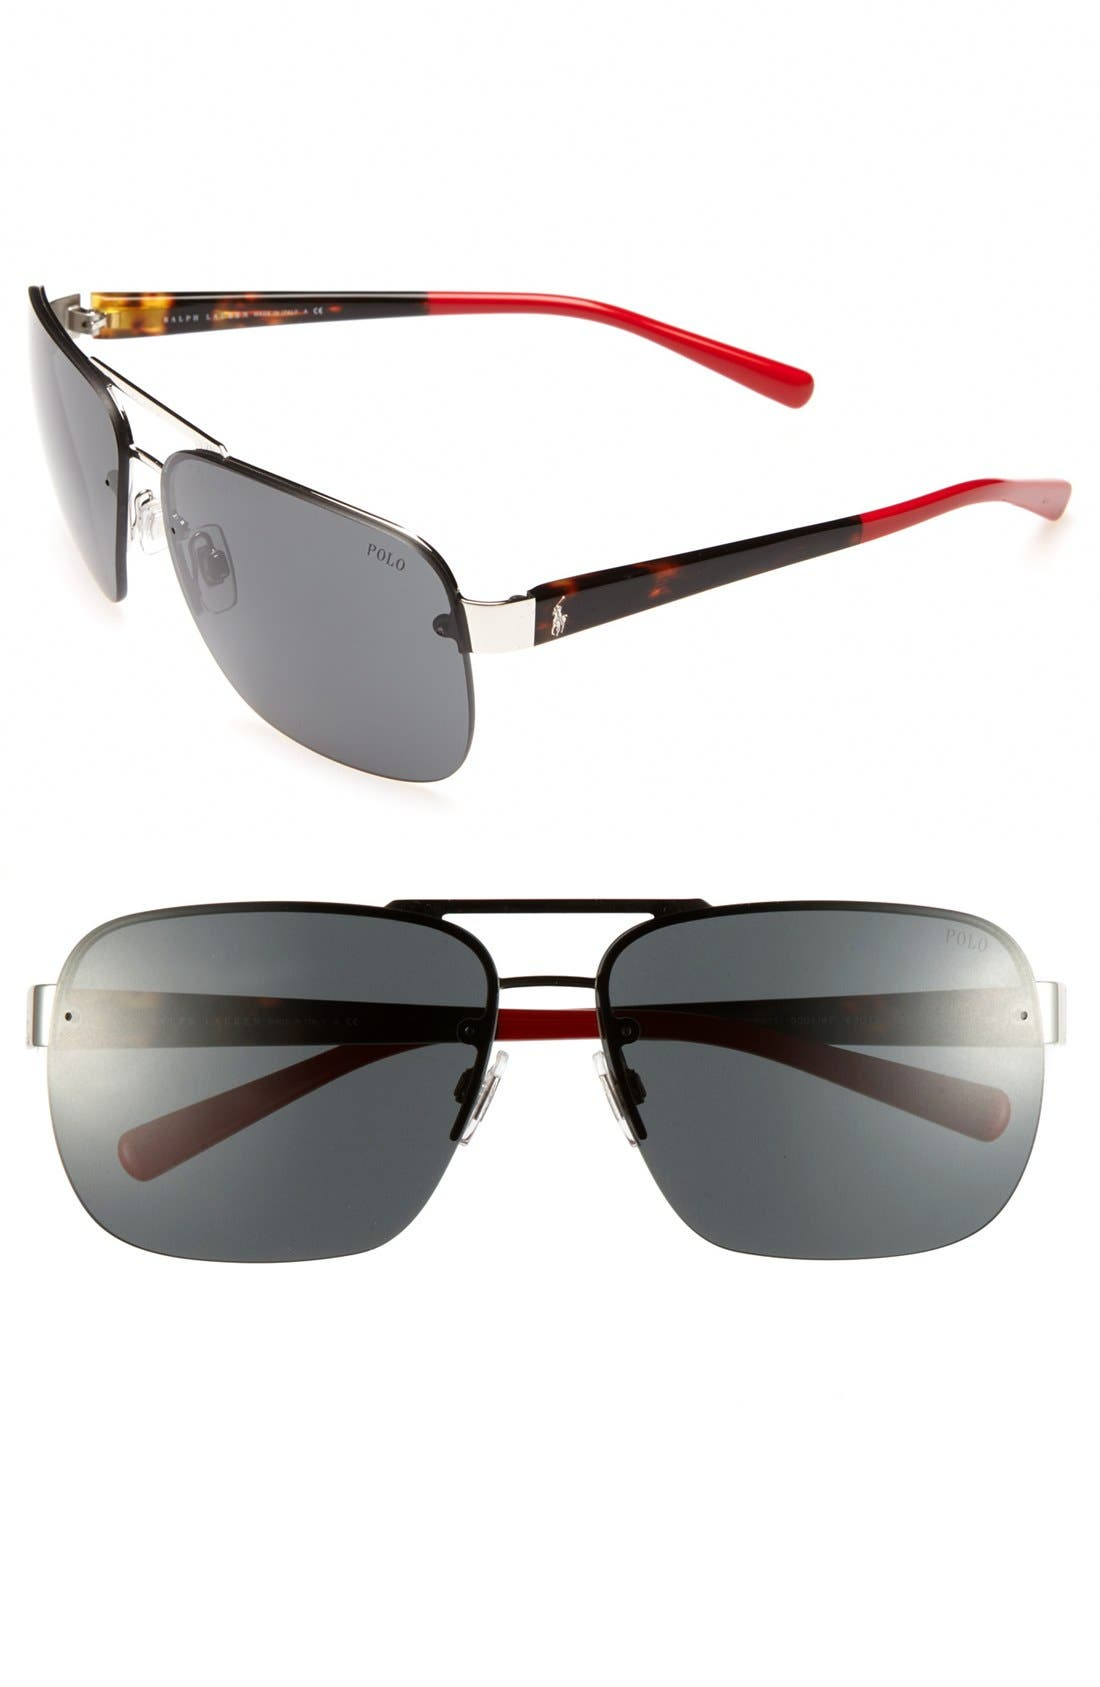 Alternate Image 1 Selected - Polo Ralph Lauren 'Color End' 62mm Sunglasses